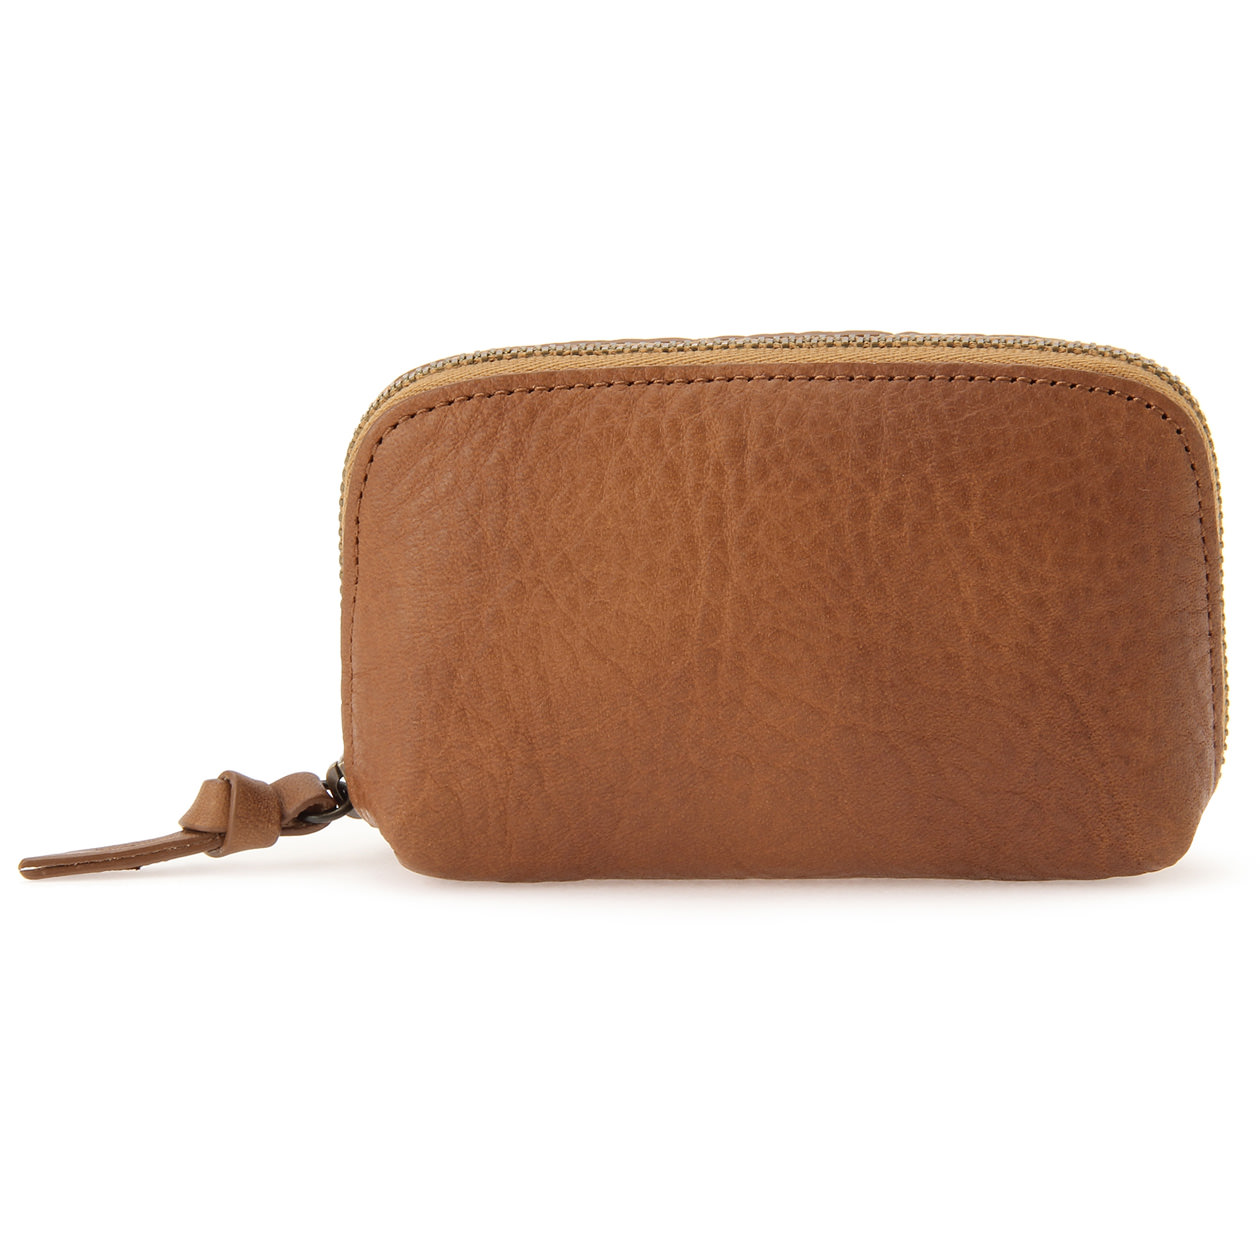 TANNED SHRINK LEATHER KEY & CARD CASE BROWN | MUJI